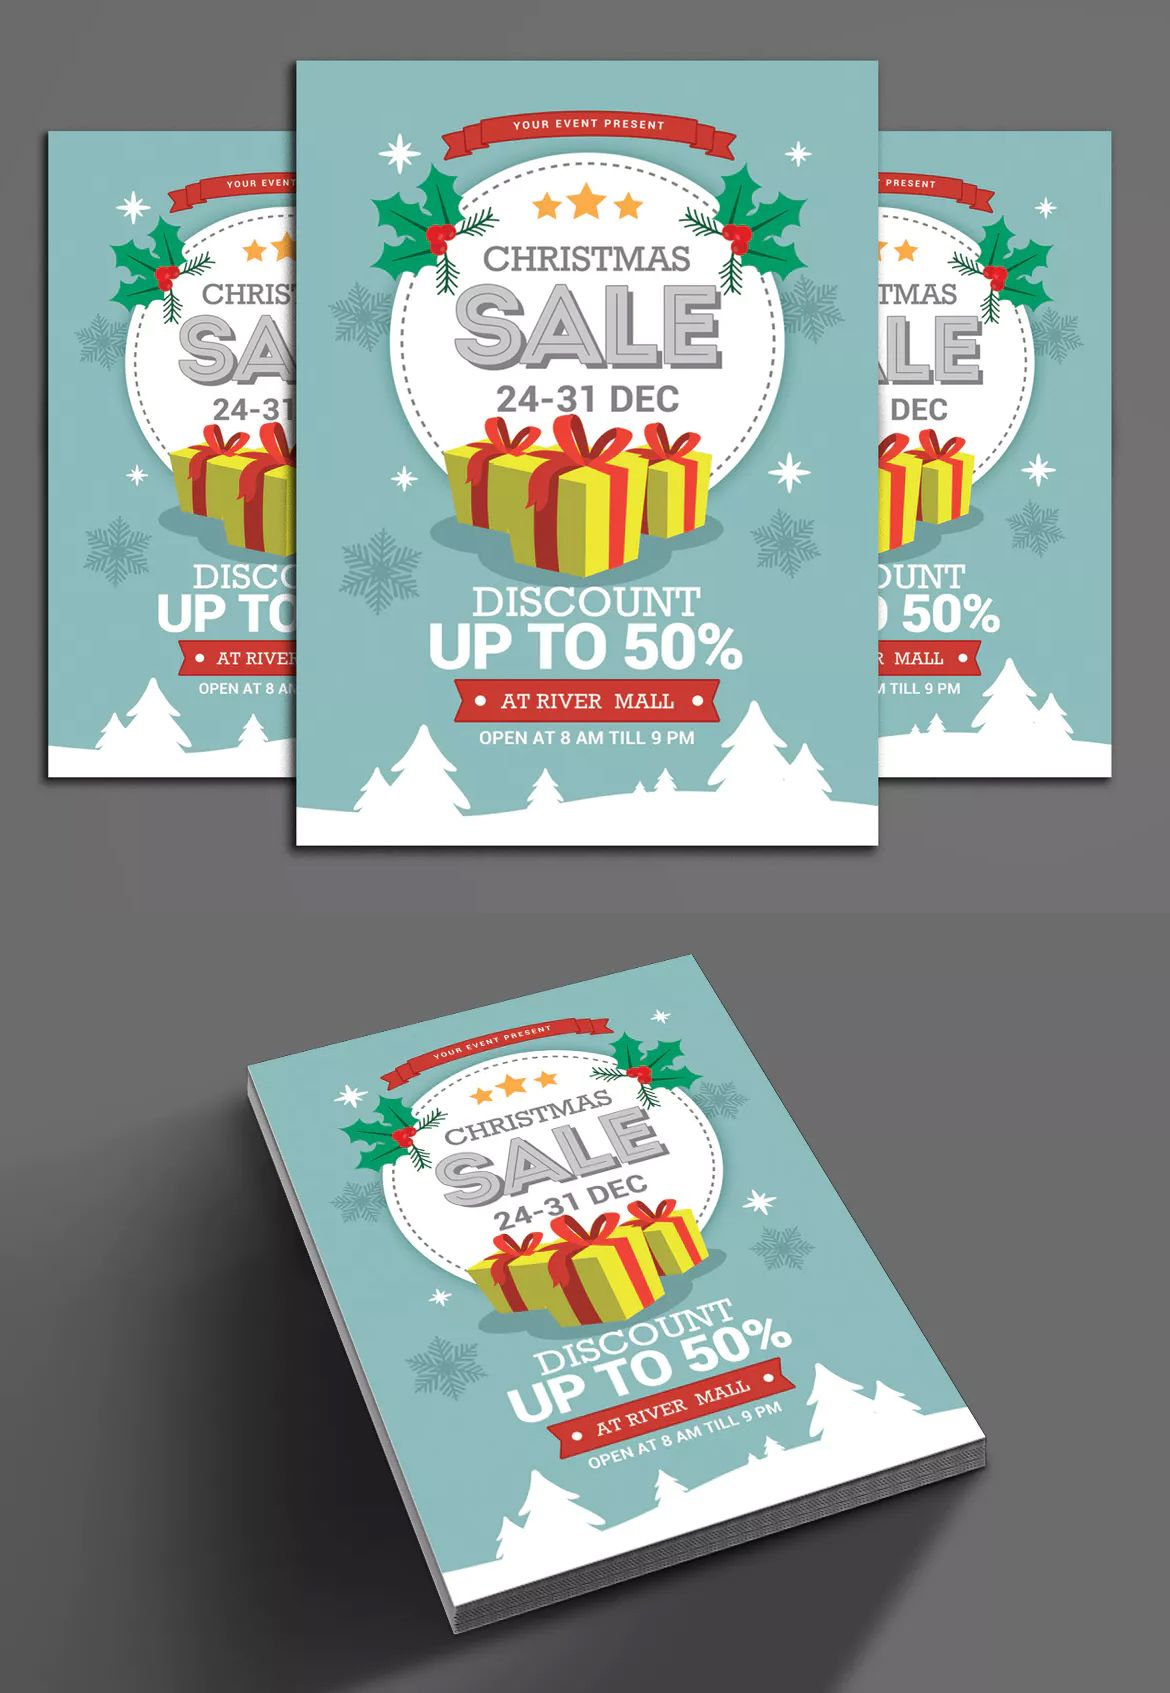 Christmas Sale Flyer Template Dimensions 8 27x11 69 in size with